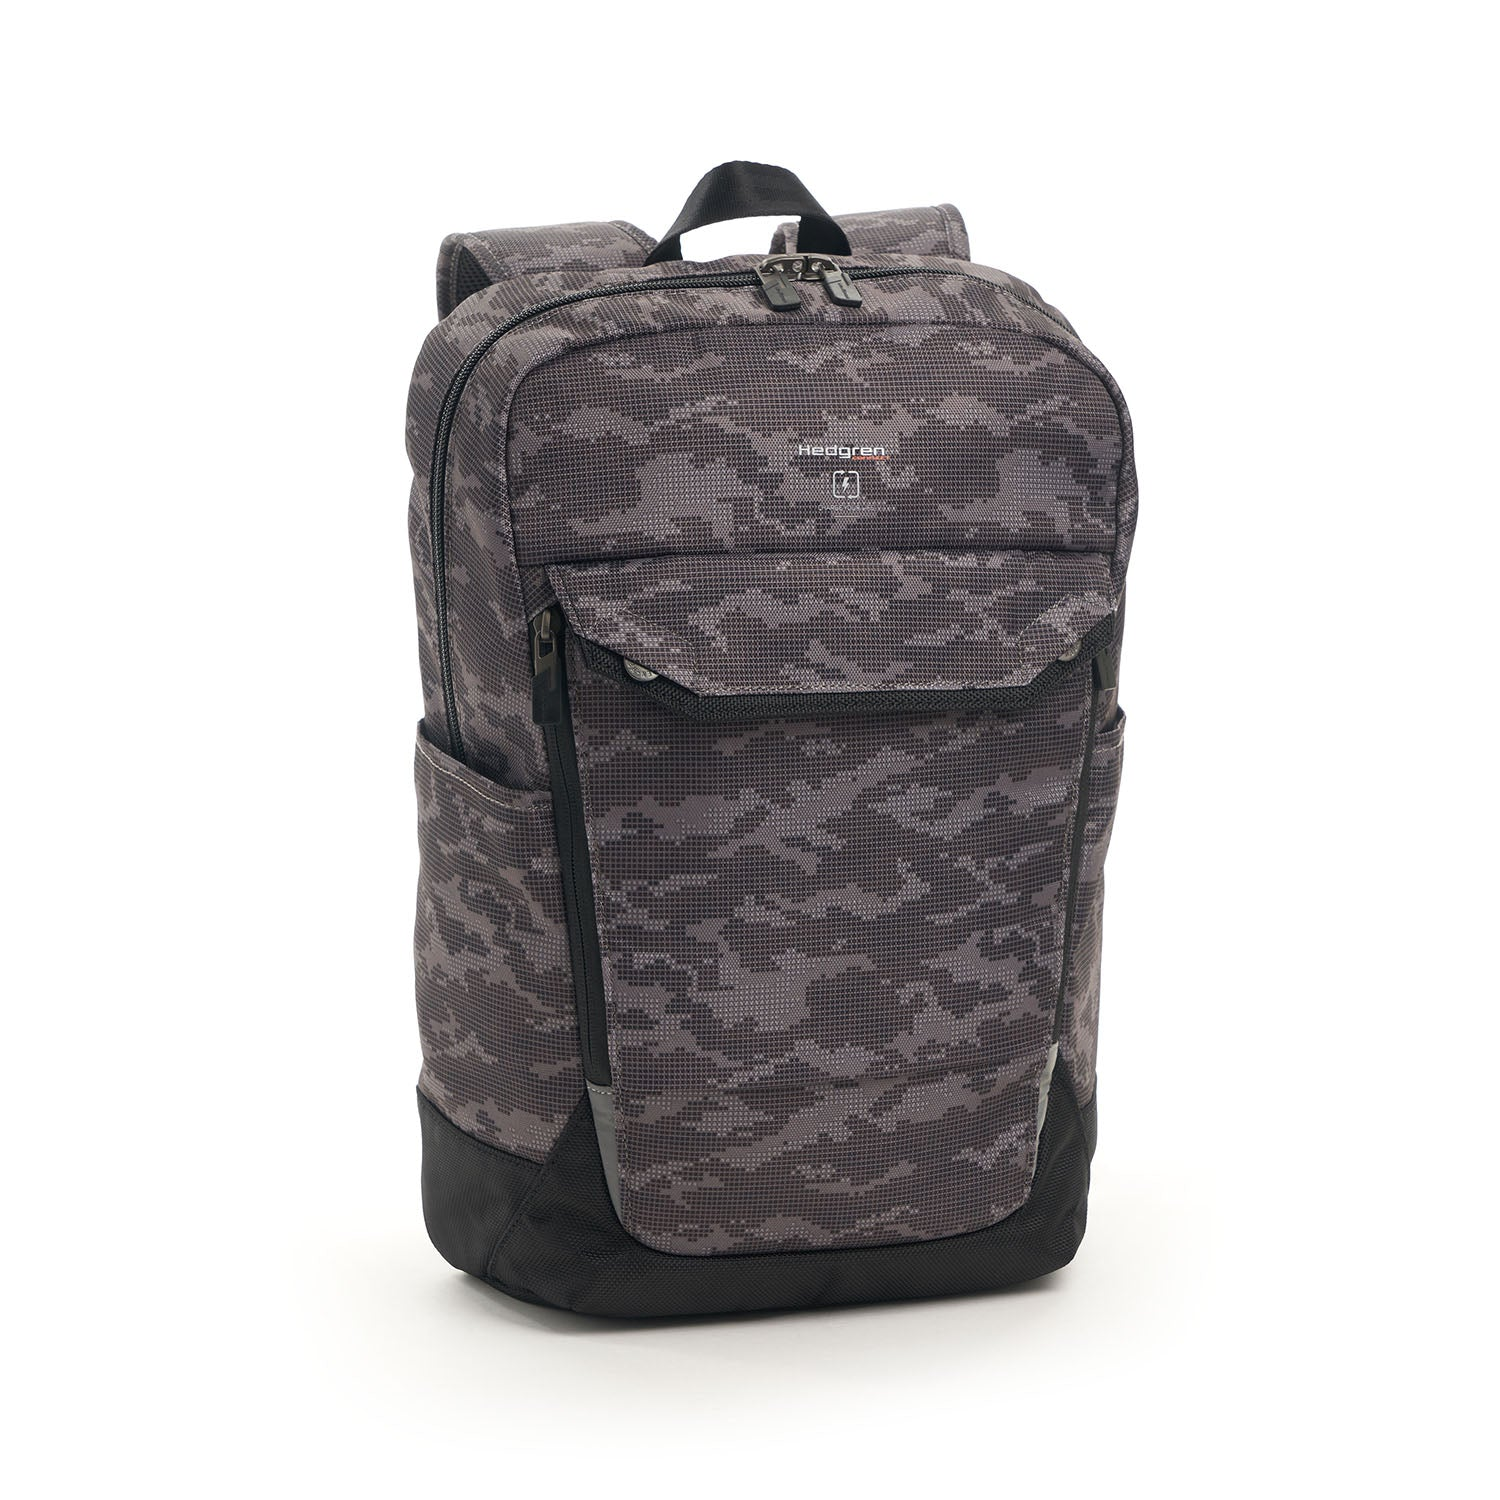 Splice Slim Stylish Travel Backpack|Link Collection|Hedgren